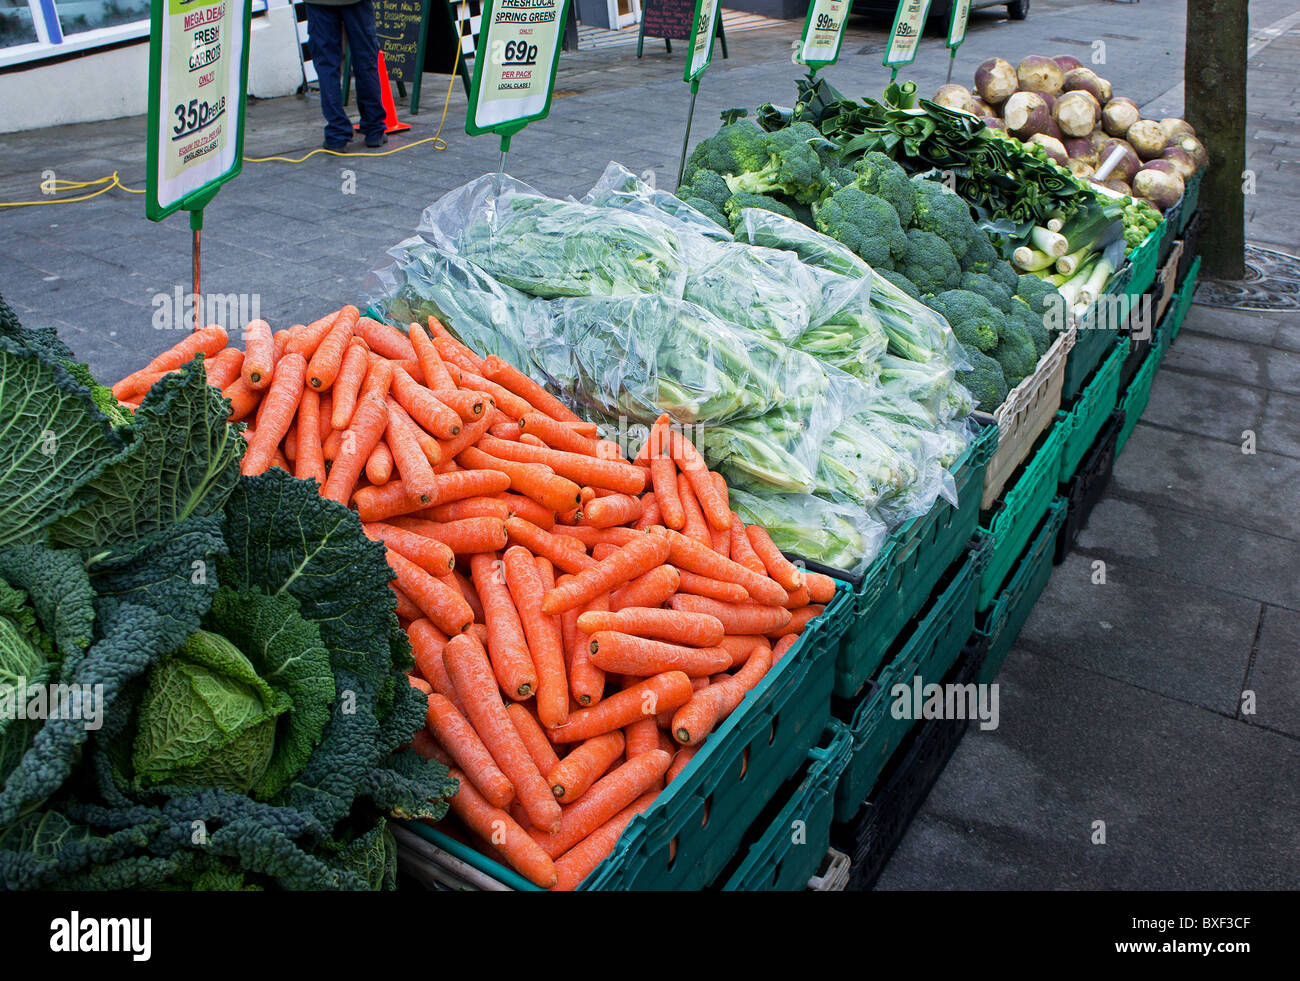 seasonal vegetables for sale on a village market stall in cornwall, uk - Stock Image